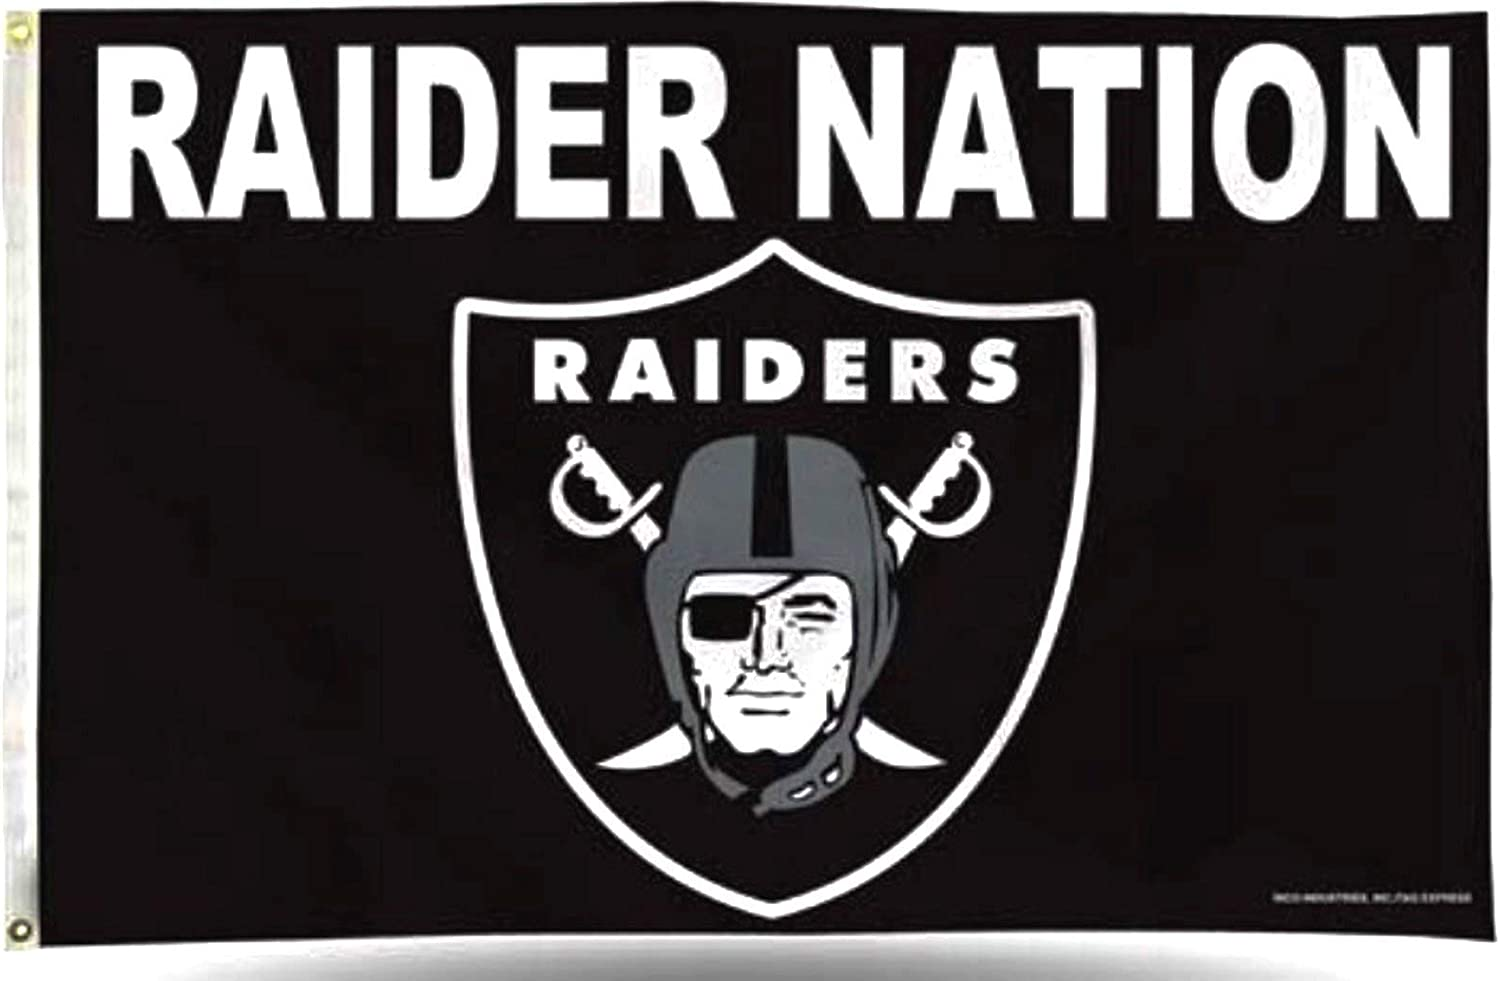 Amazon Com Rico Industries Inc Las Vegas Raiders Raider Nation Premium 3x5 Flag With Grommets Outdoor House Banner Oakland Football Sports Outdoors